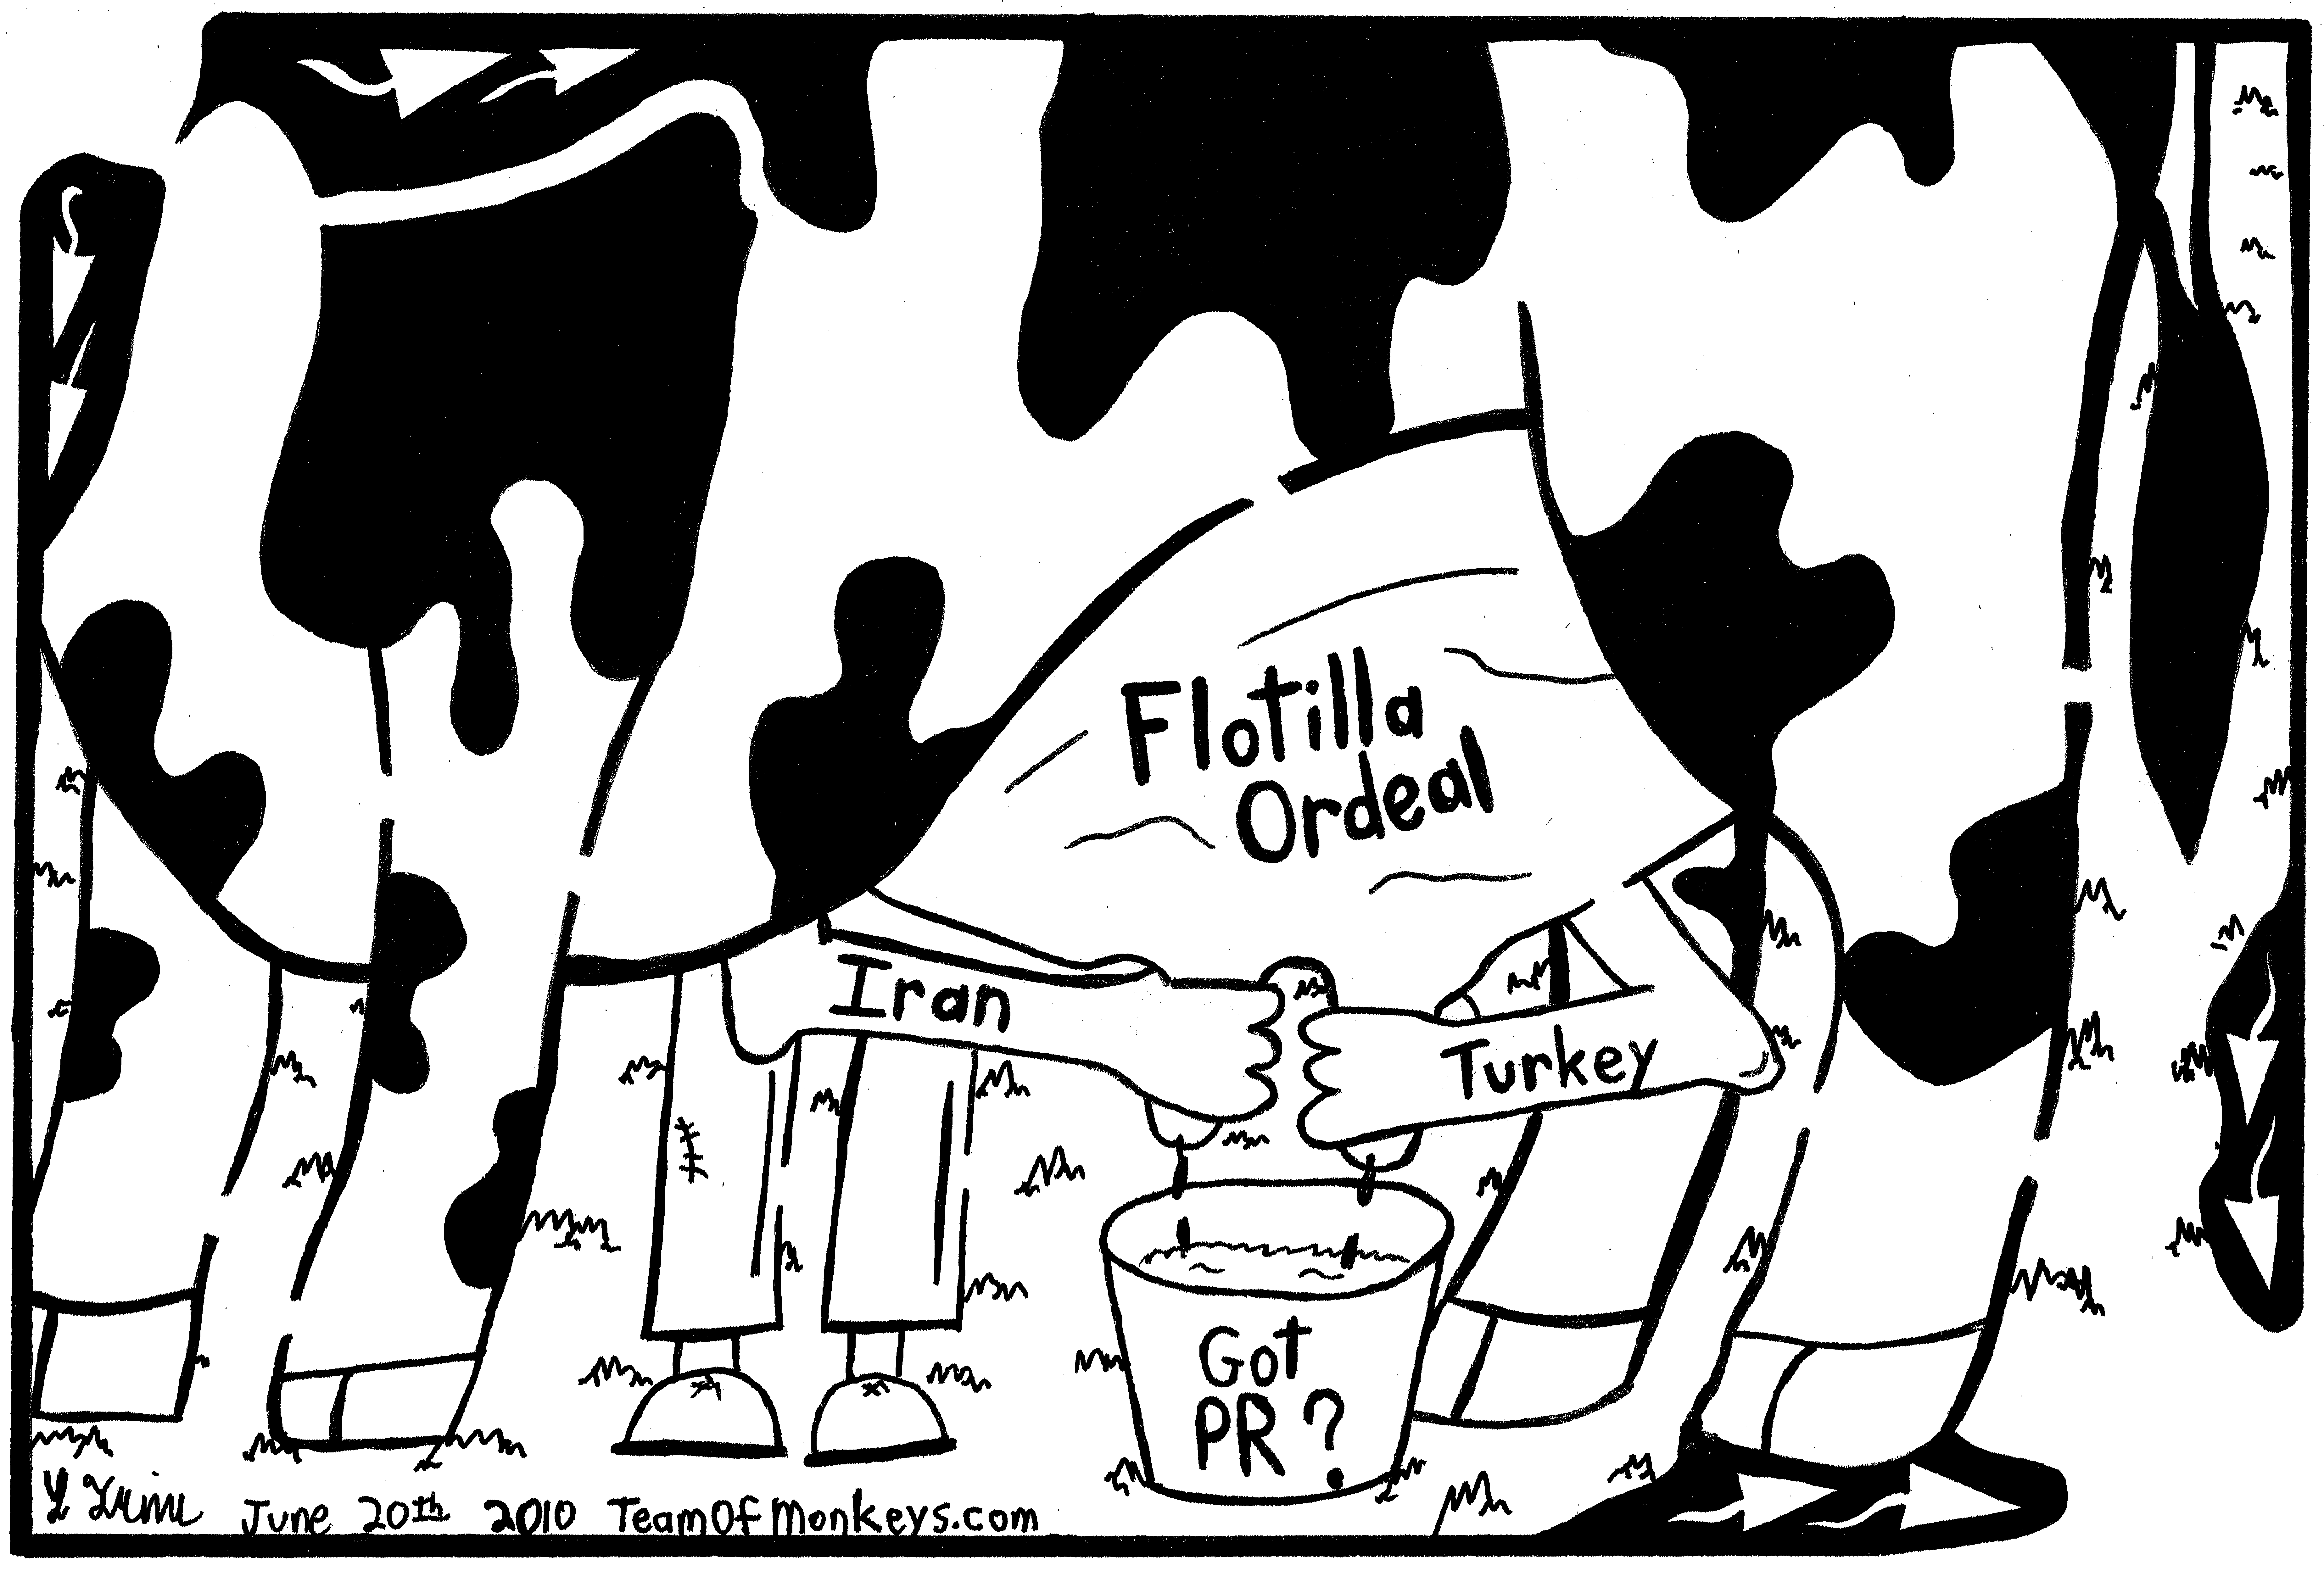 milking-cow-flotilla-ordeal-turkey-iran-got-milk-pr-israel-maze ...